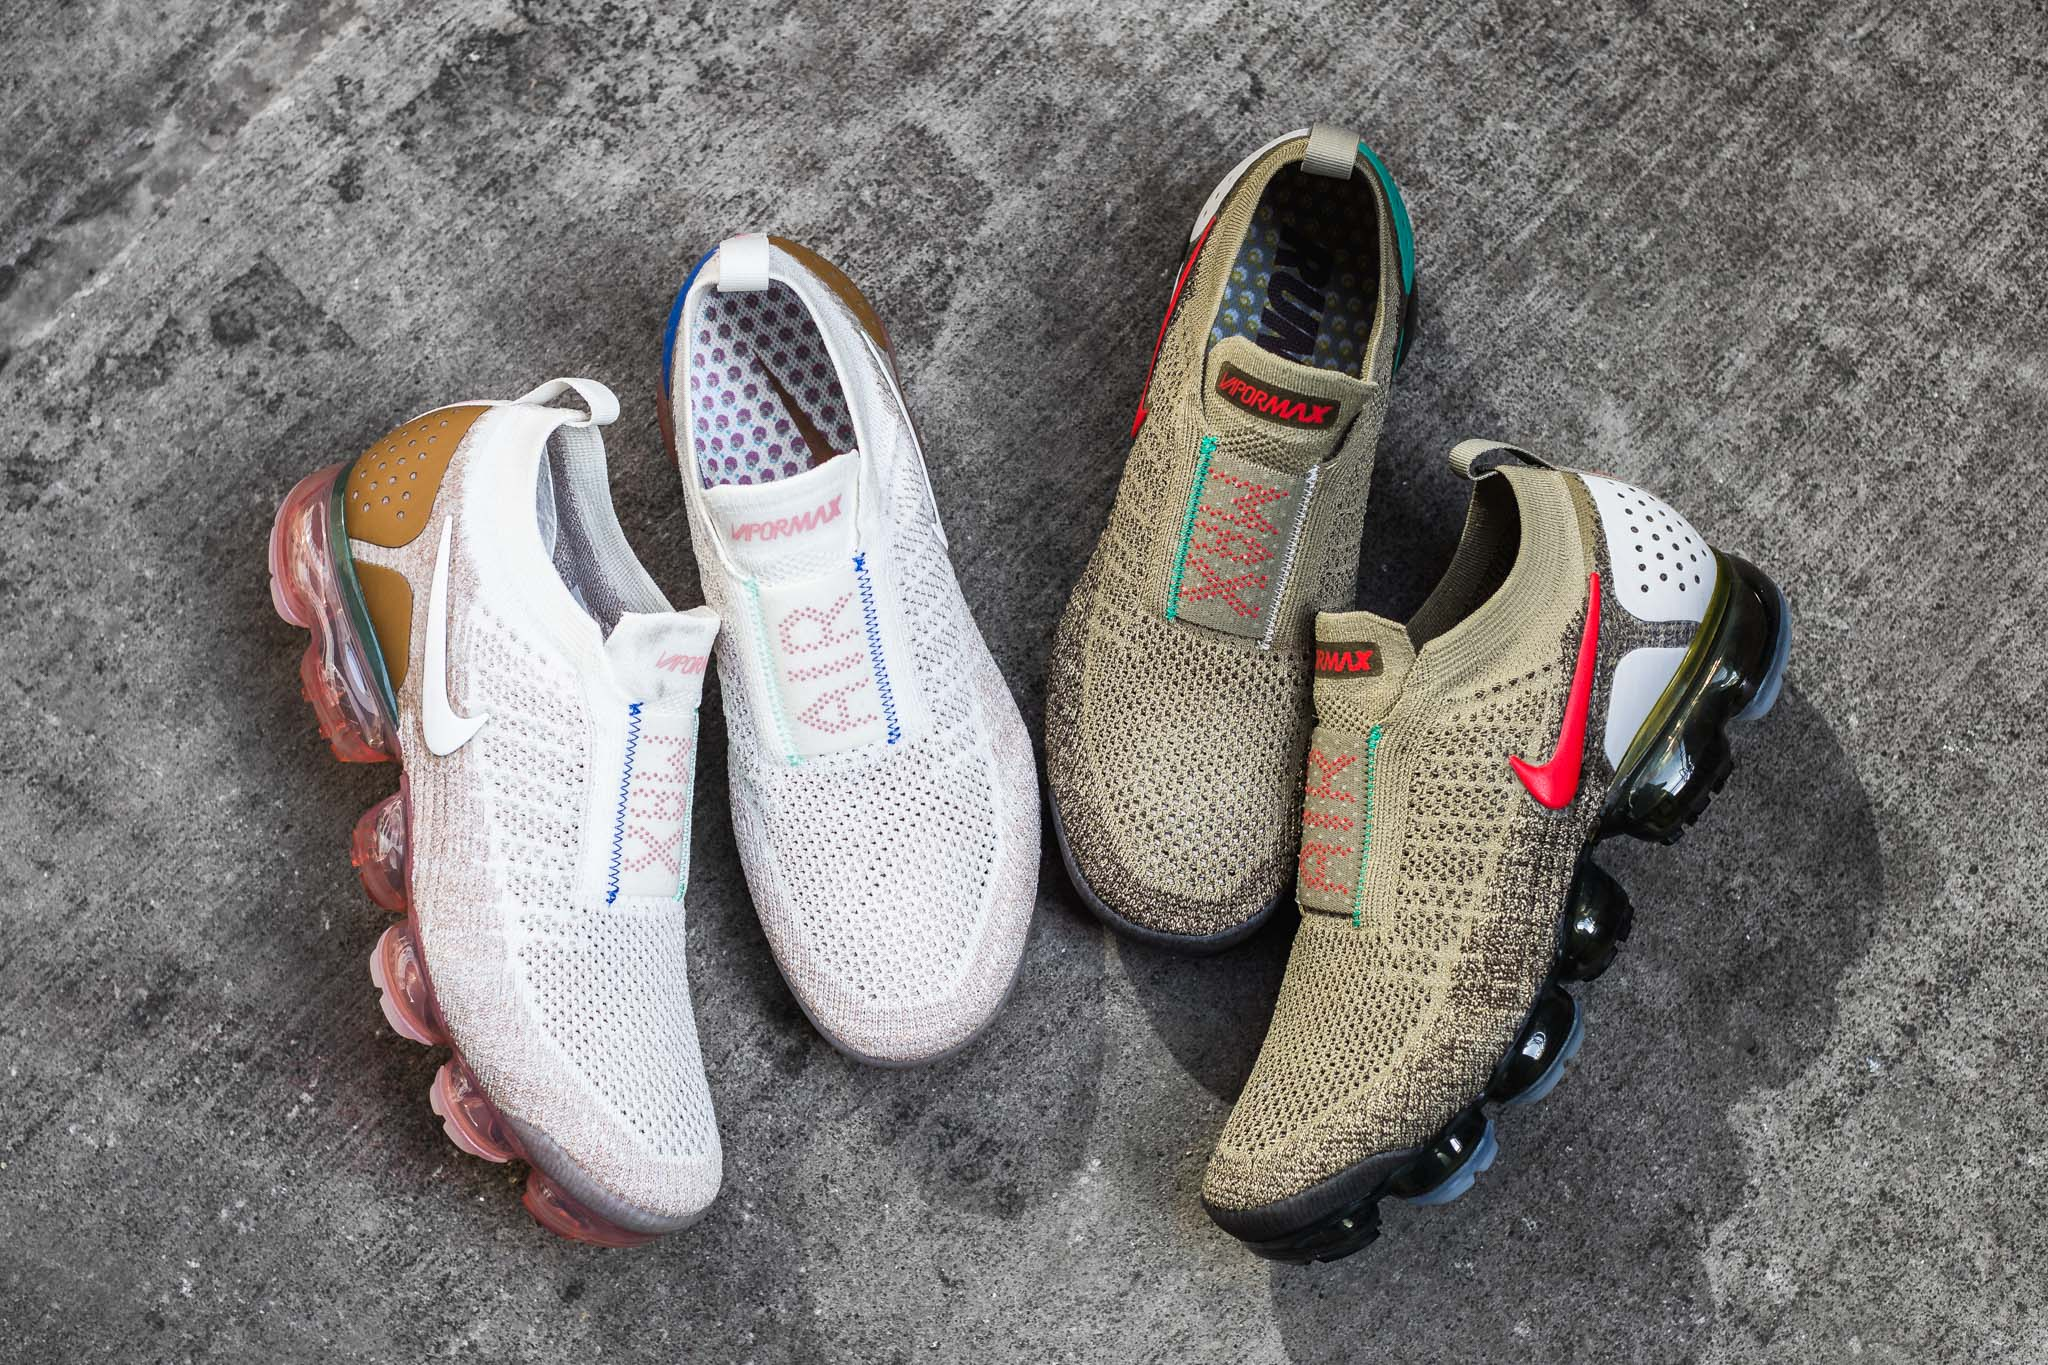 f5fa000366 The Nike Air VaporMax FK Moc 2 Collection arrives with two new colourways  to refresh your rotation. The Air VaporMax FK Moc 2 removes the lacing for  the ...